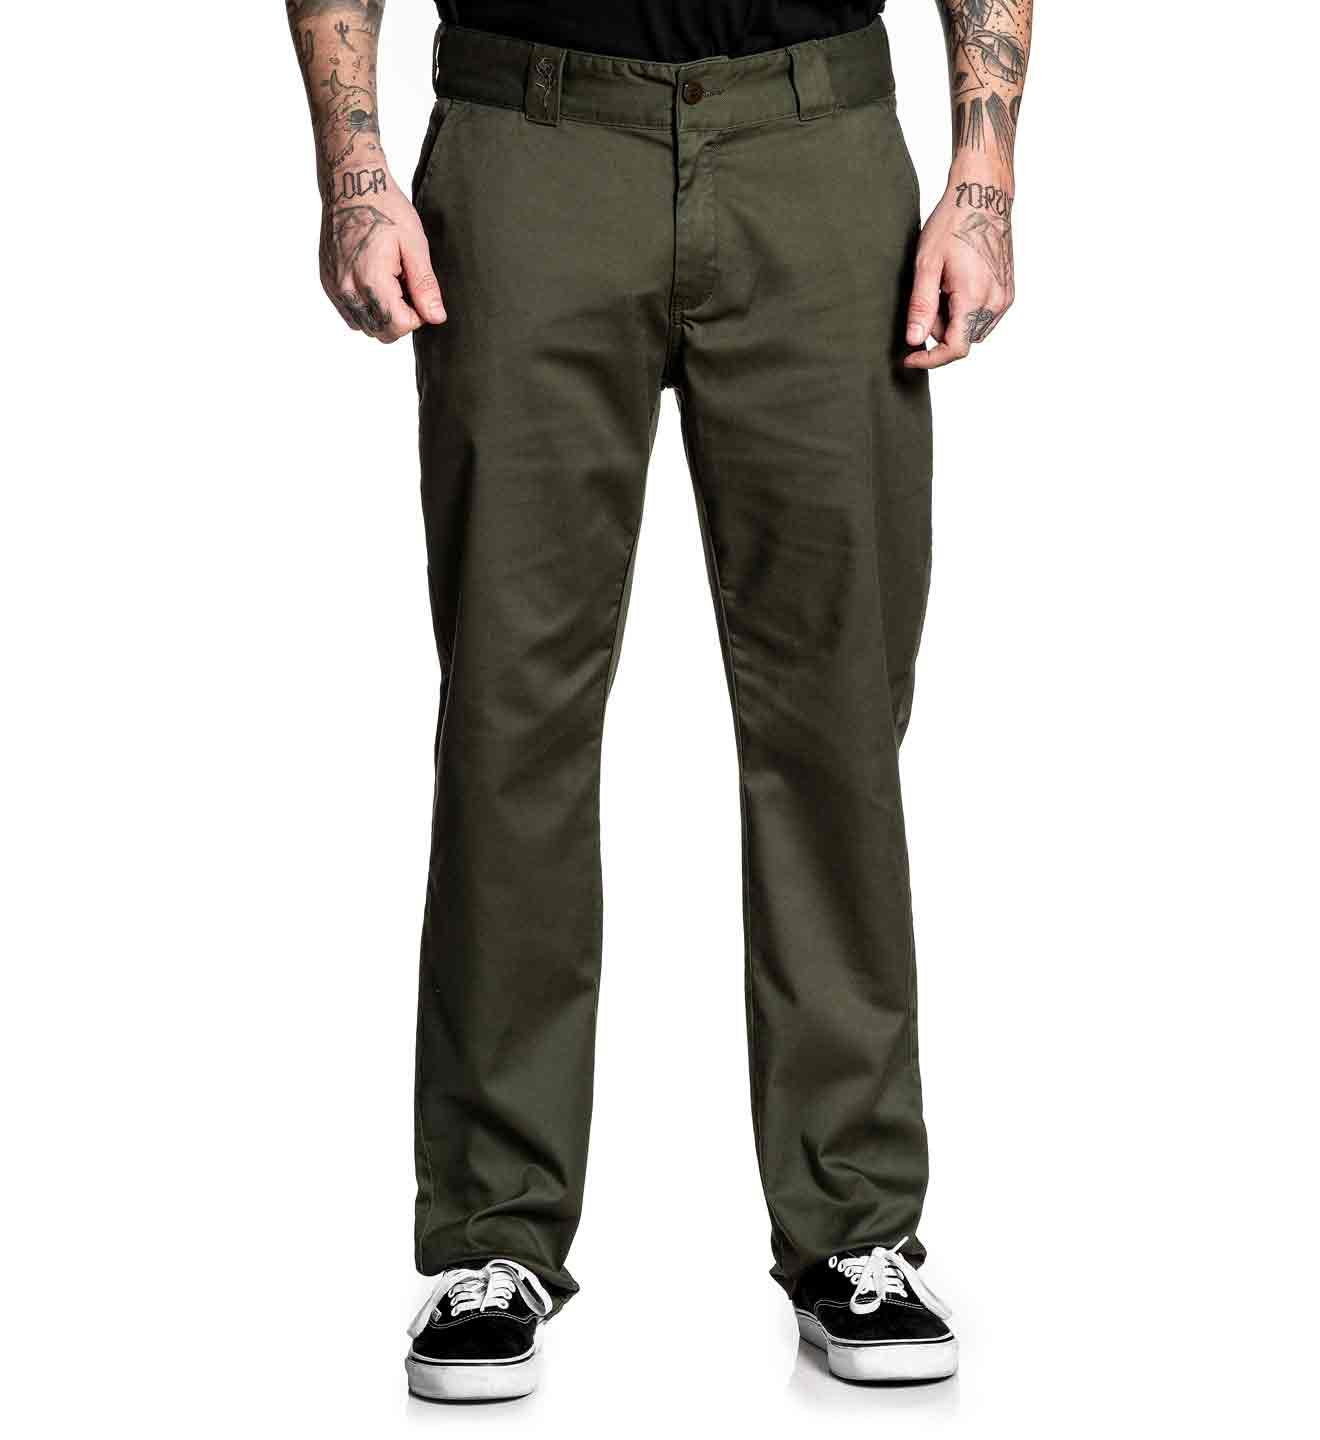 925 Chino Pant Olive